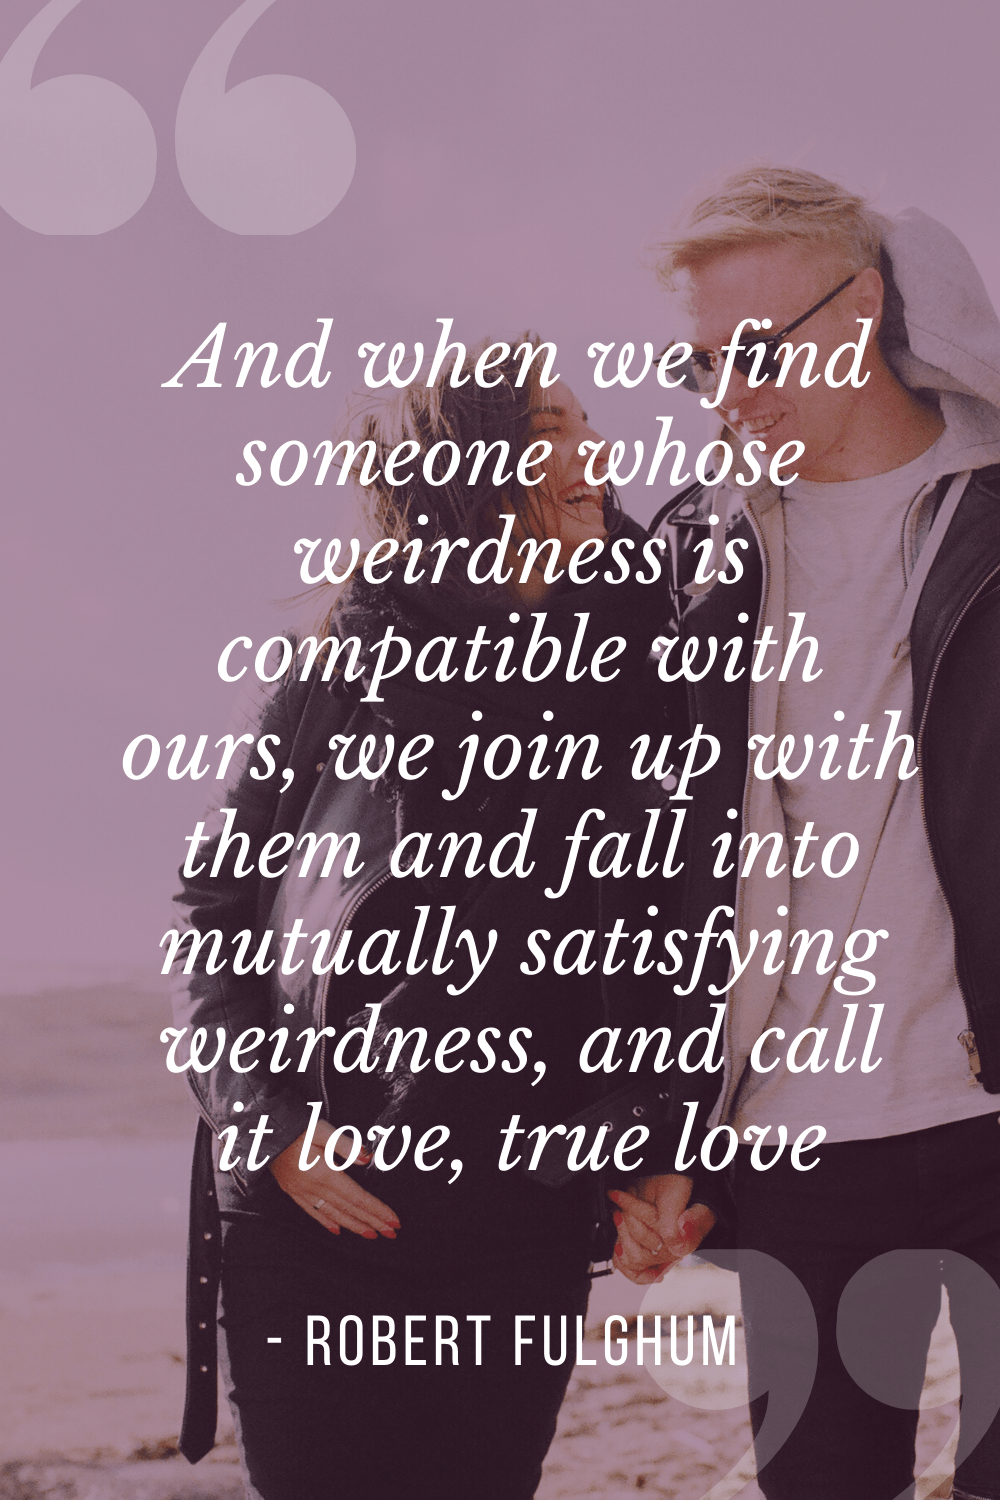 """We join up with them and fall into mutually satisfying weirdness, and call it love, true love"", Robert Fulghum"